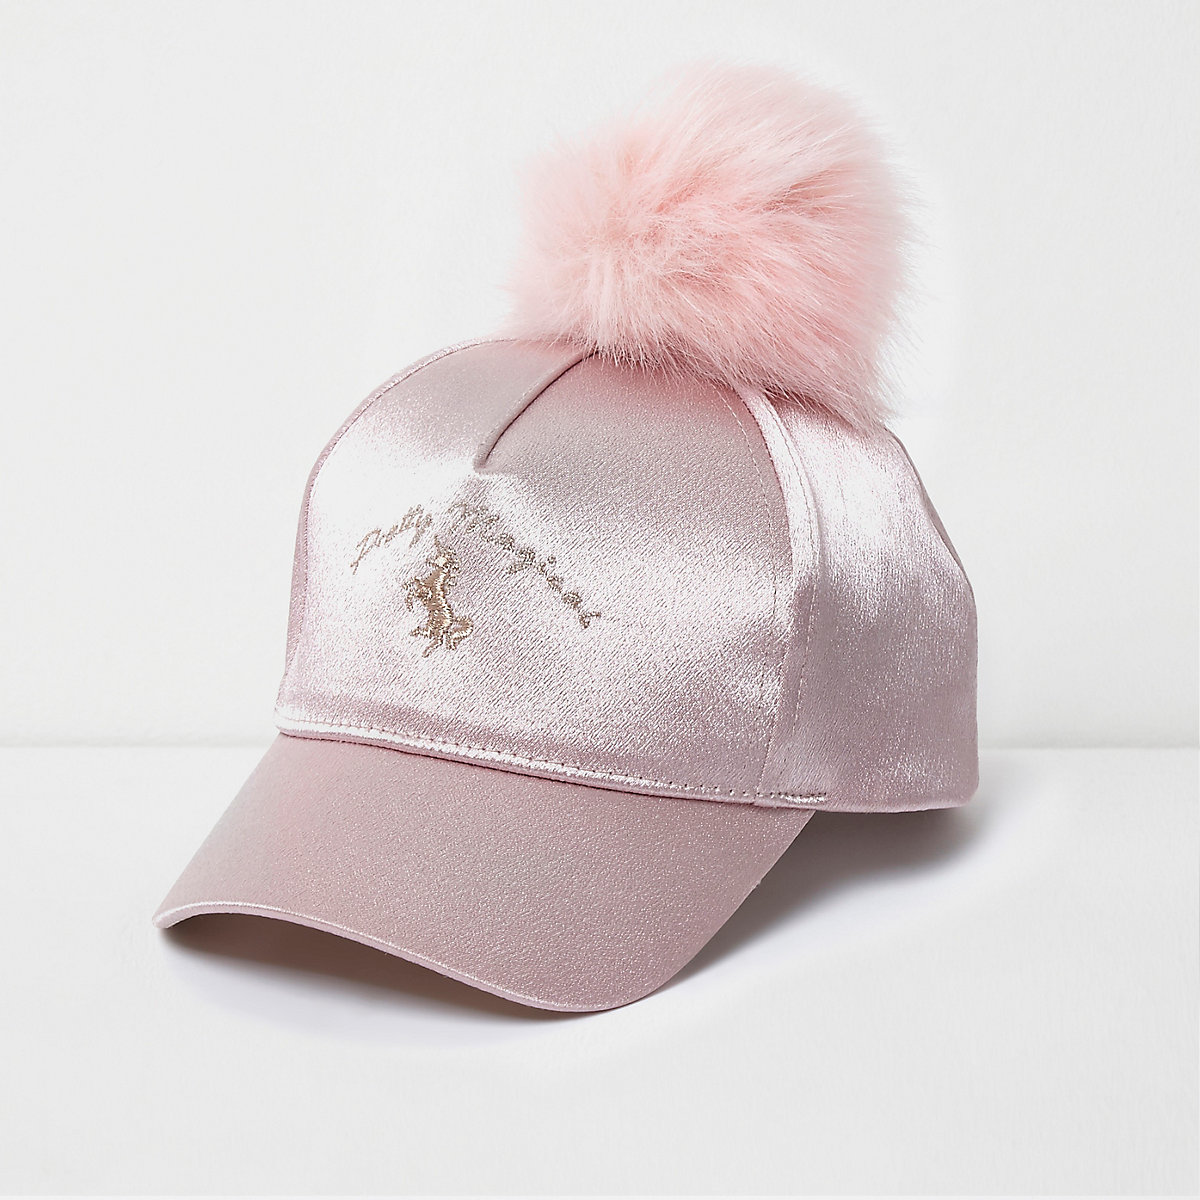 Mini girls pink unicorn pom pom baseball cap - Baby Girls Accessories -  Mini Girls - girls b9d87b2a17f5